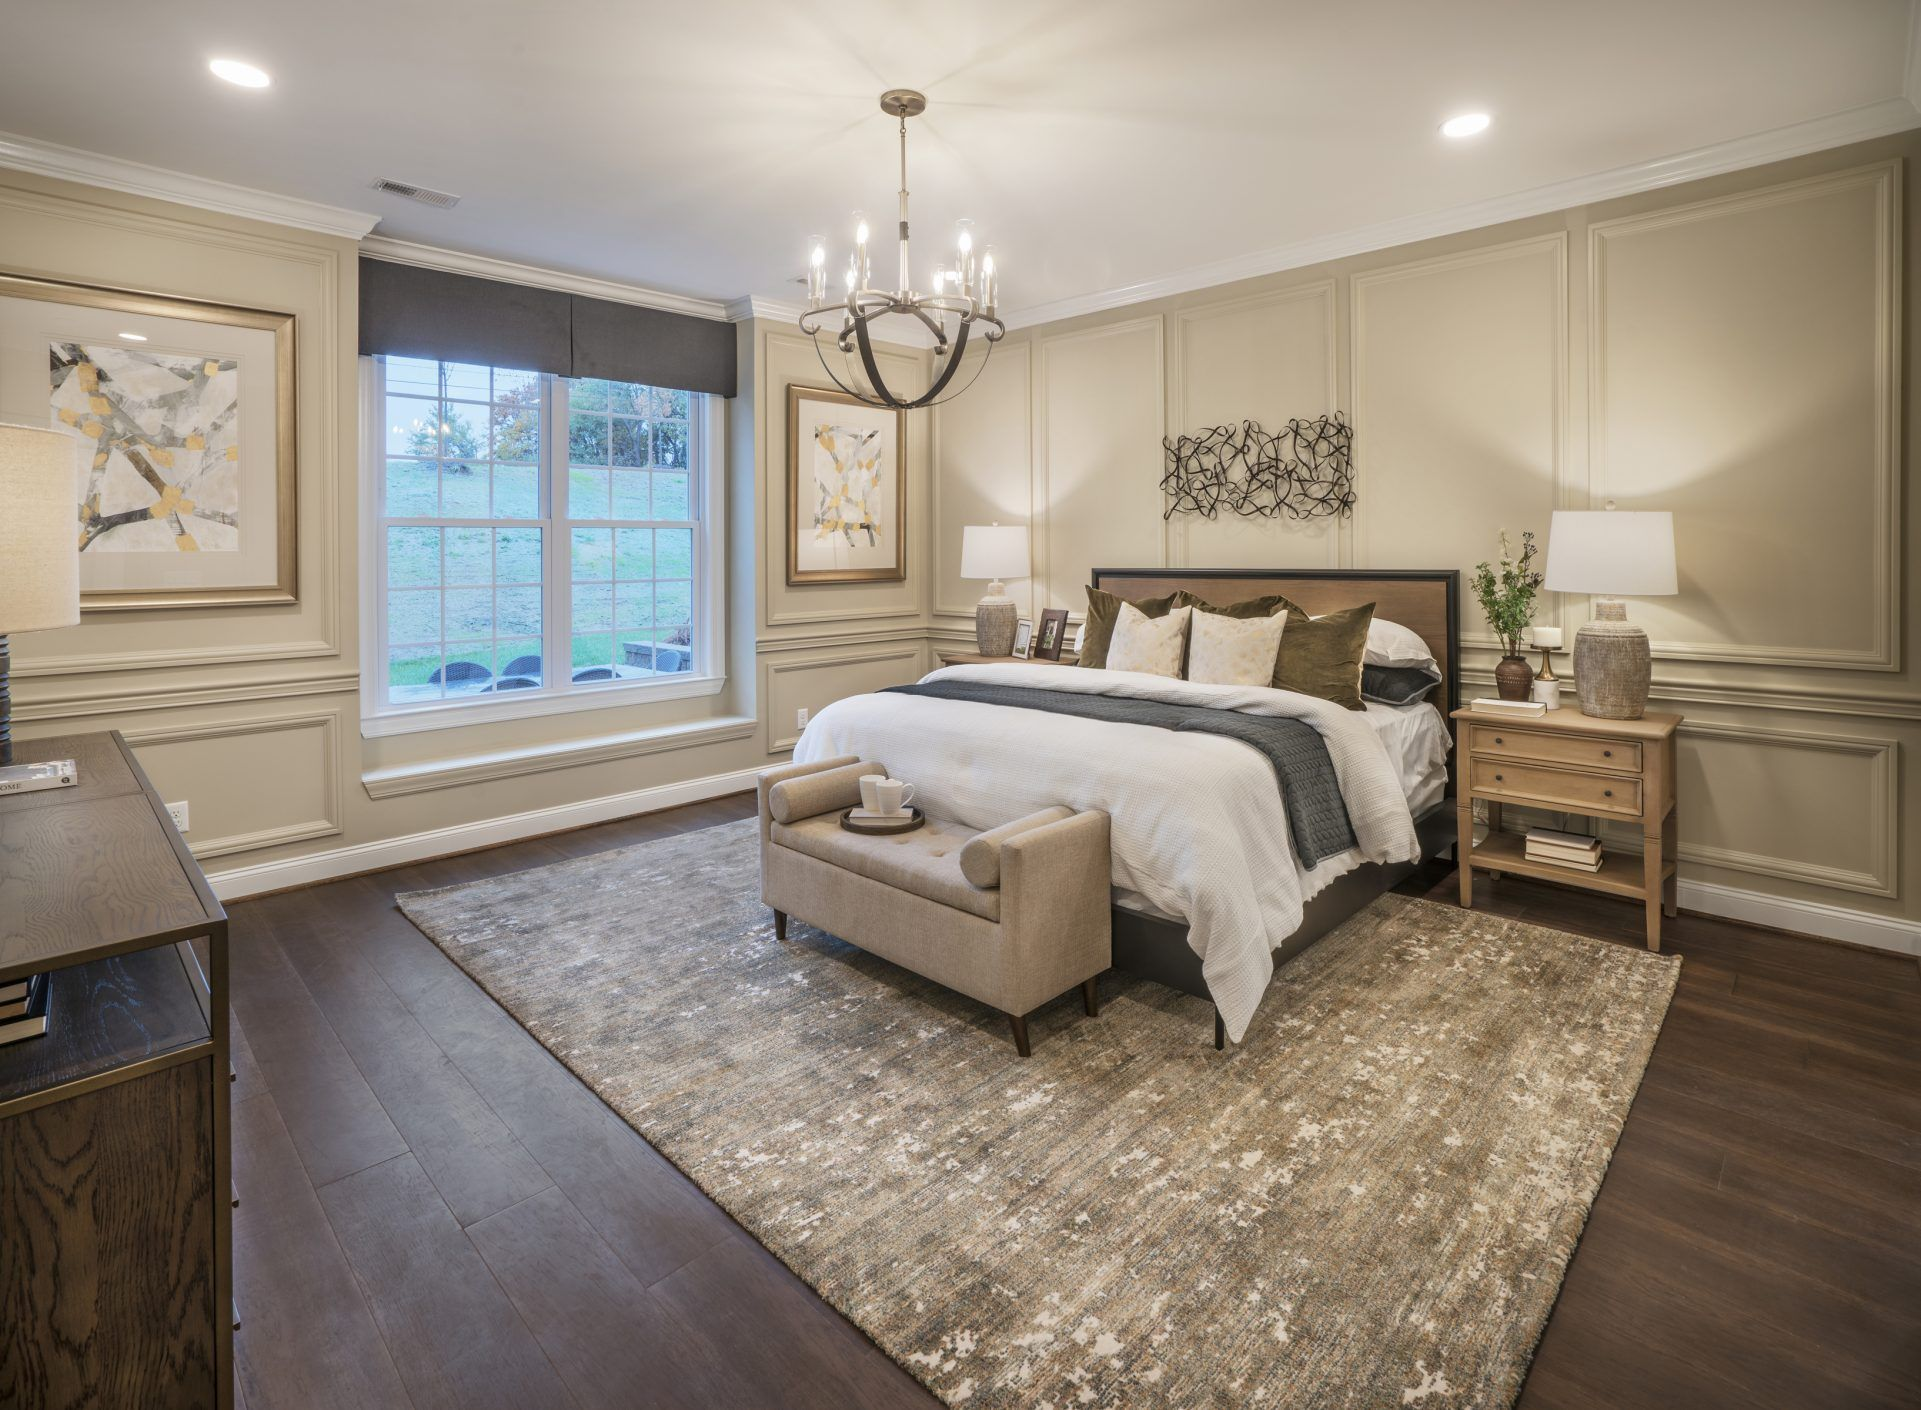 Bedroom featured in The Adams By Traditions of America in Allentown-Bethlehem, PA